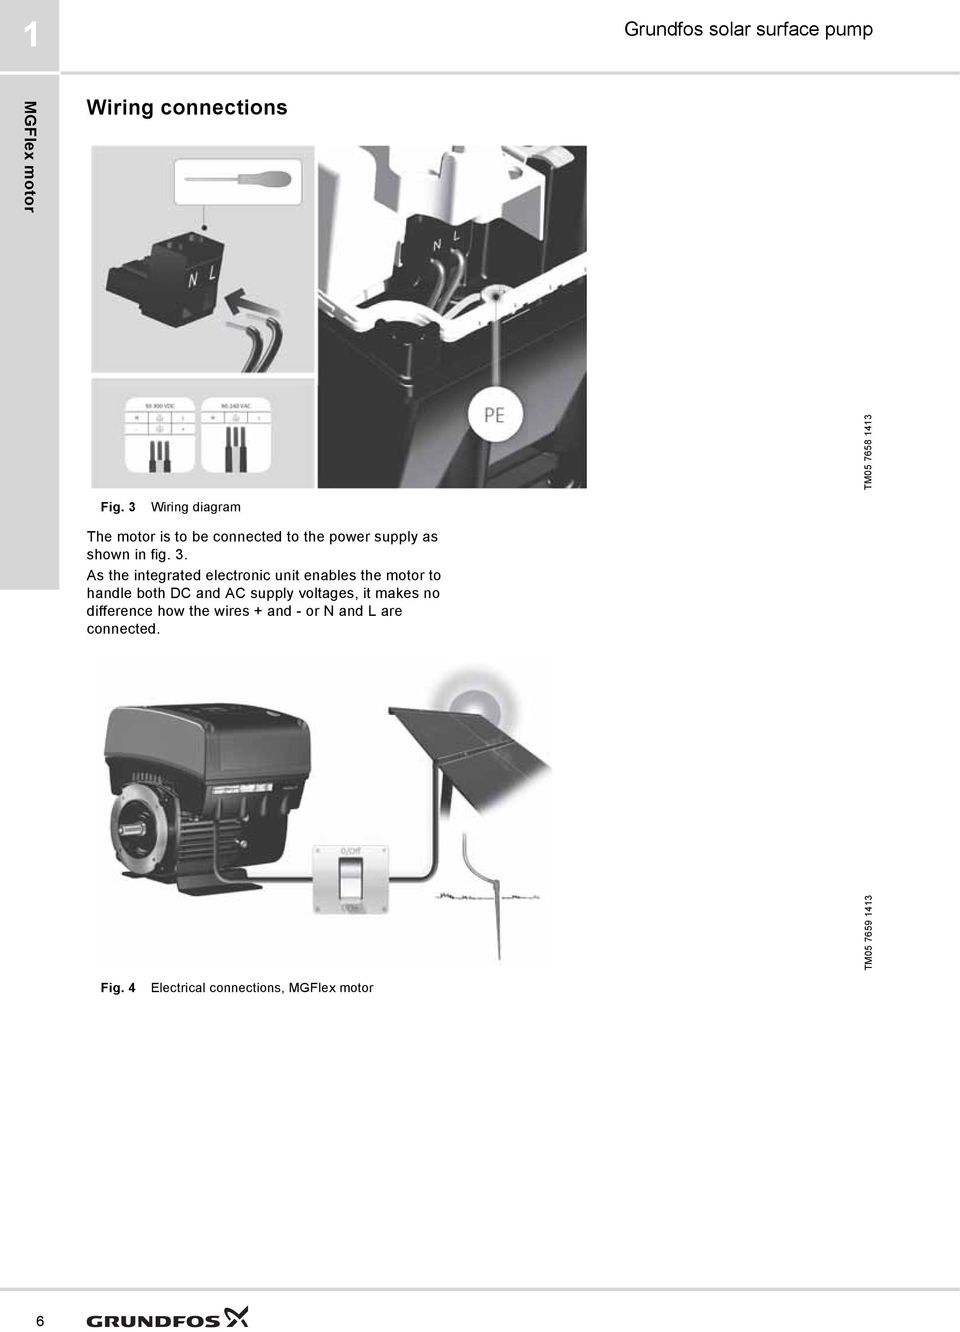 Grundfos Solar Surface Pump Pdf Wiring Diagram As The Integrated Electronic Unit Enables Motor To Handle Both Dc And Ac Supply Voltages